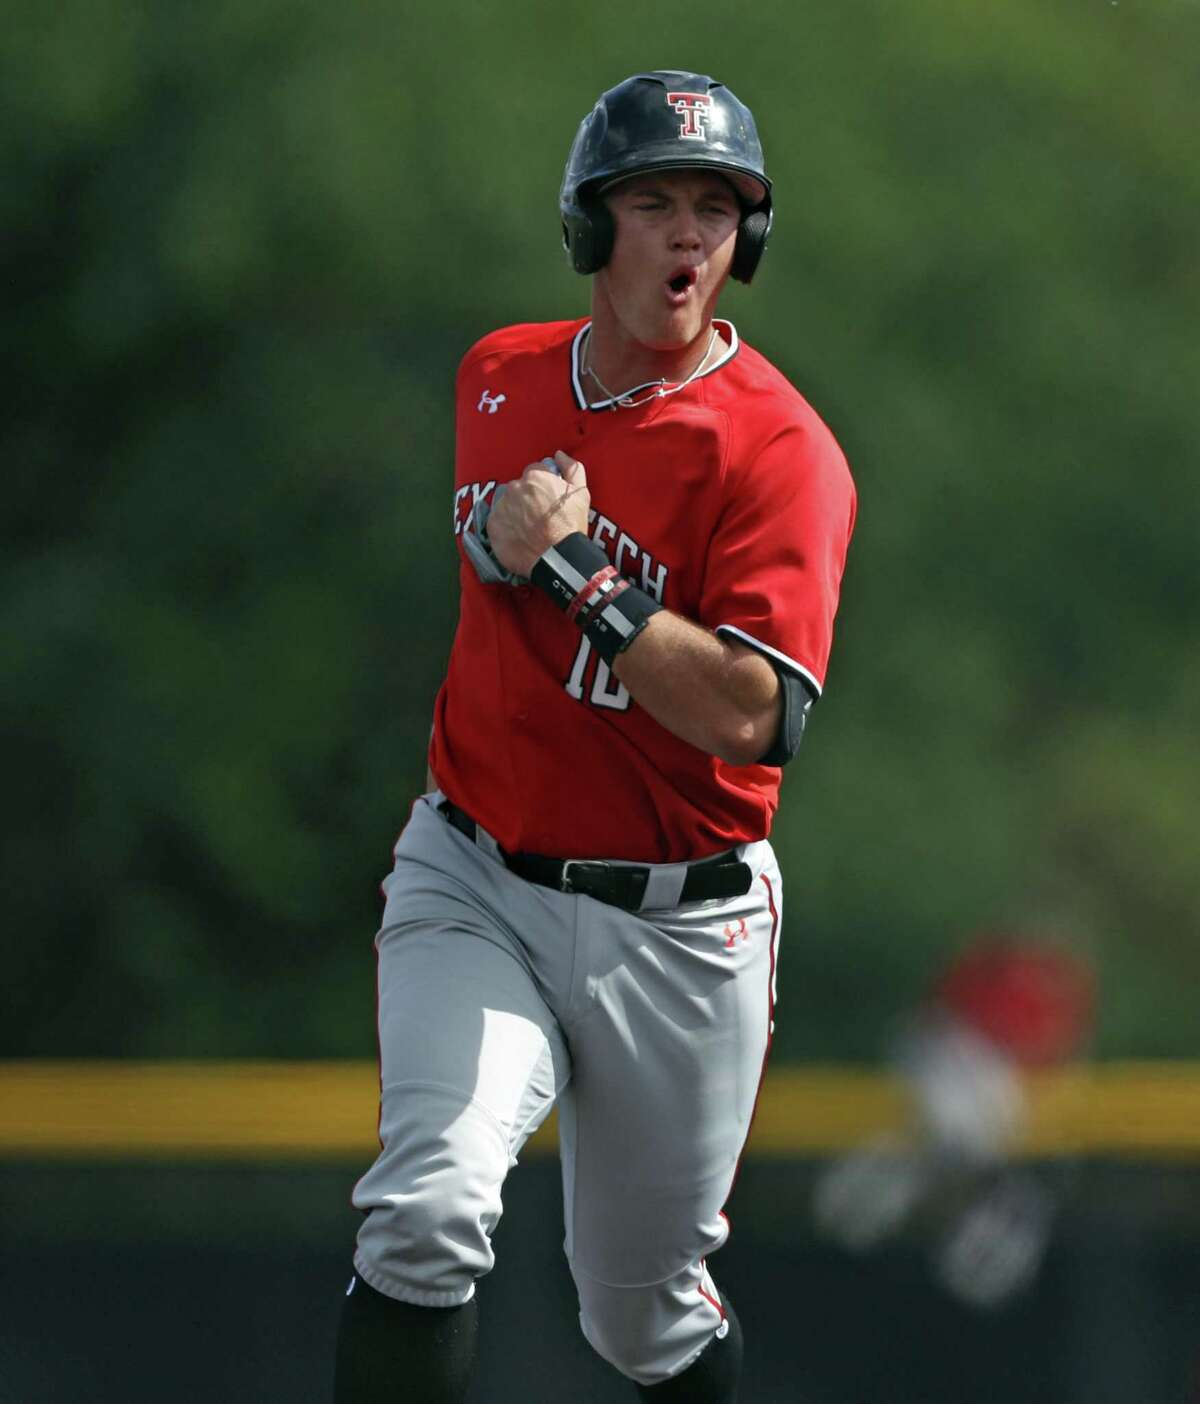 Texas Tech junior and MacArthur graduate Josh Jung was drafted as a third baseman, but he has played the last 26 games at shortstop.